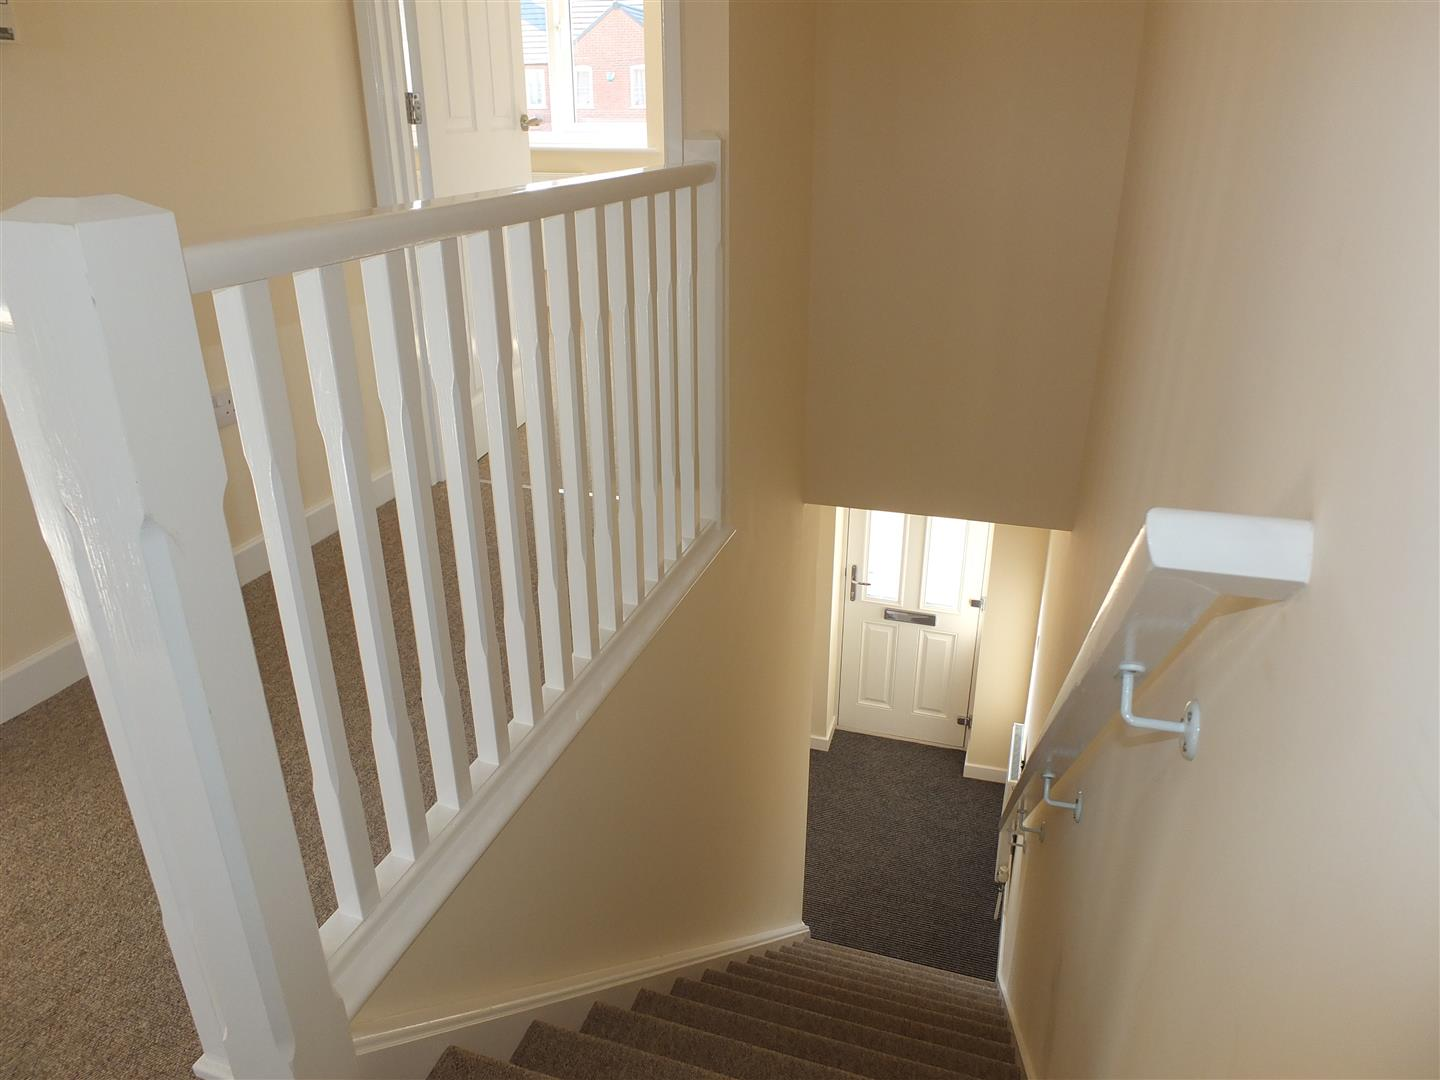 2 bed house to rent in Long Sutton, PE12 9LE 9